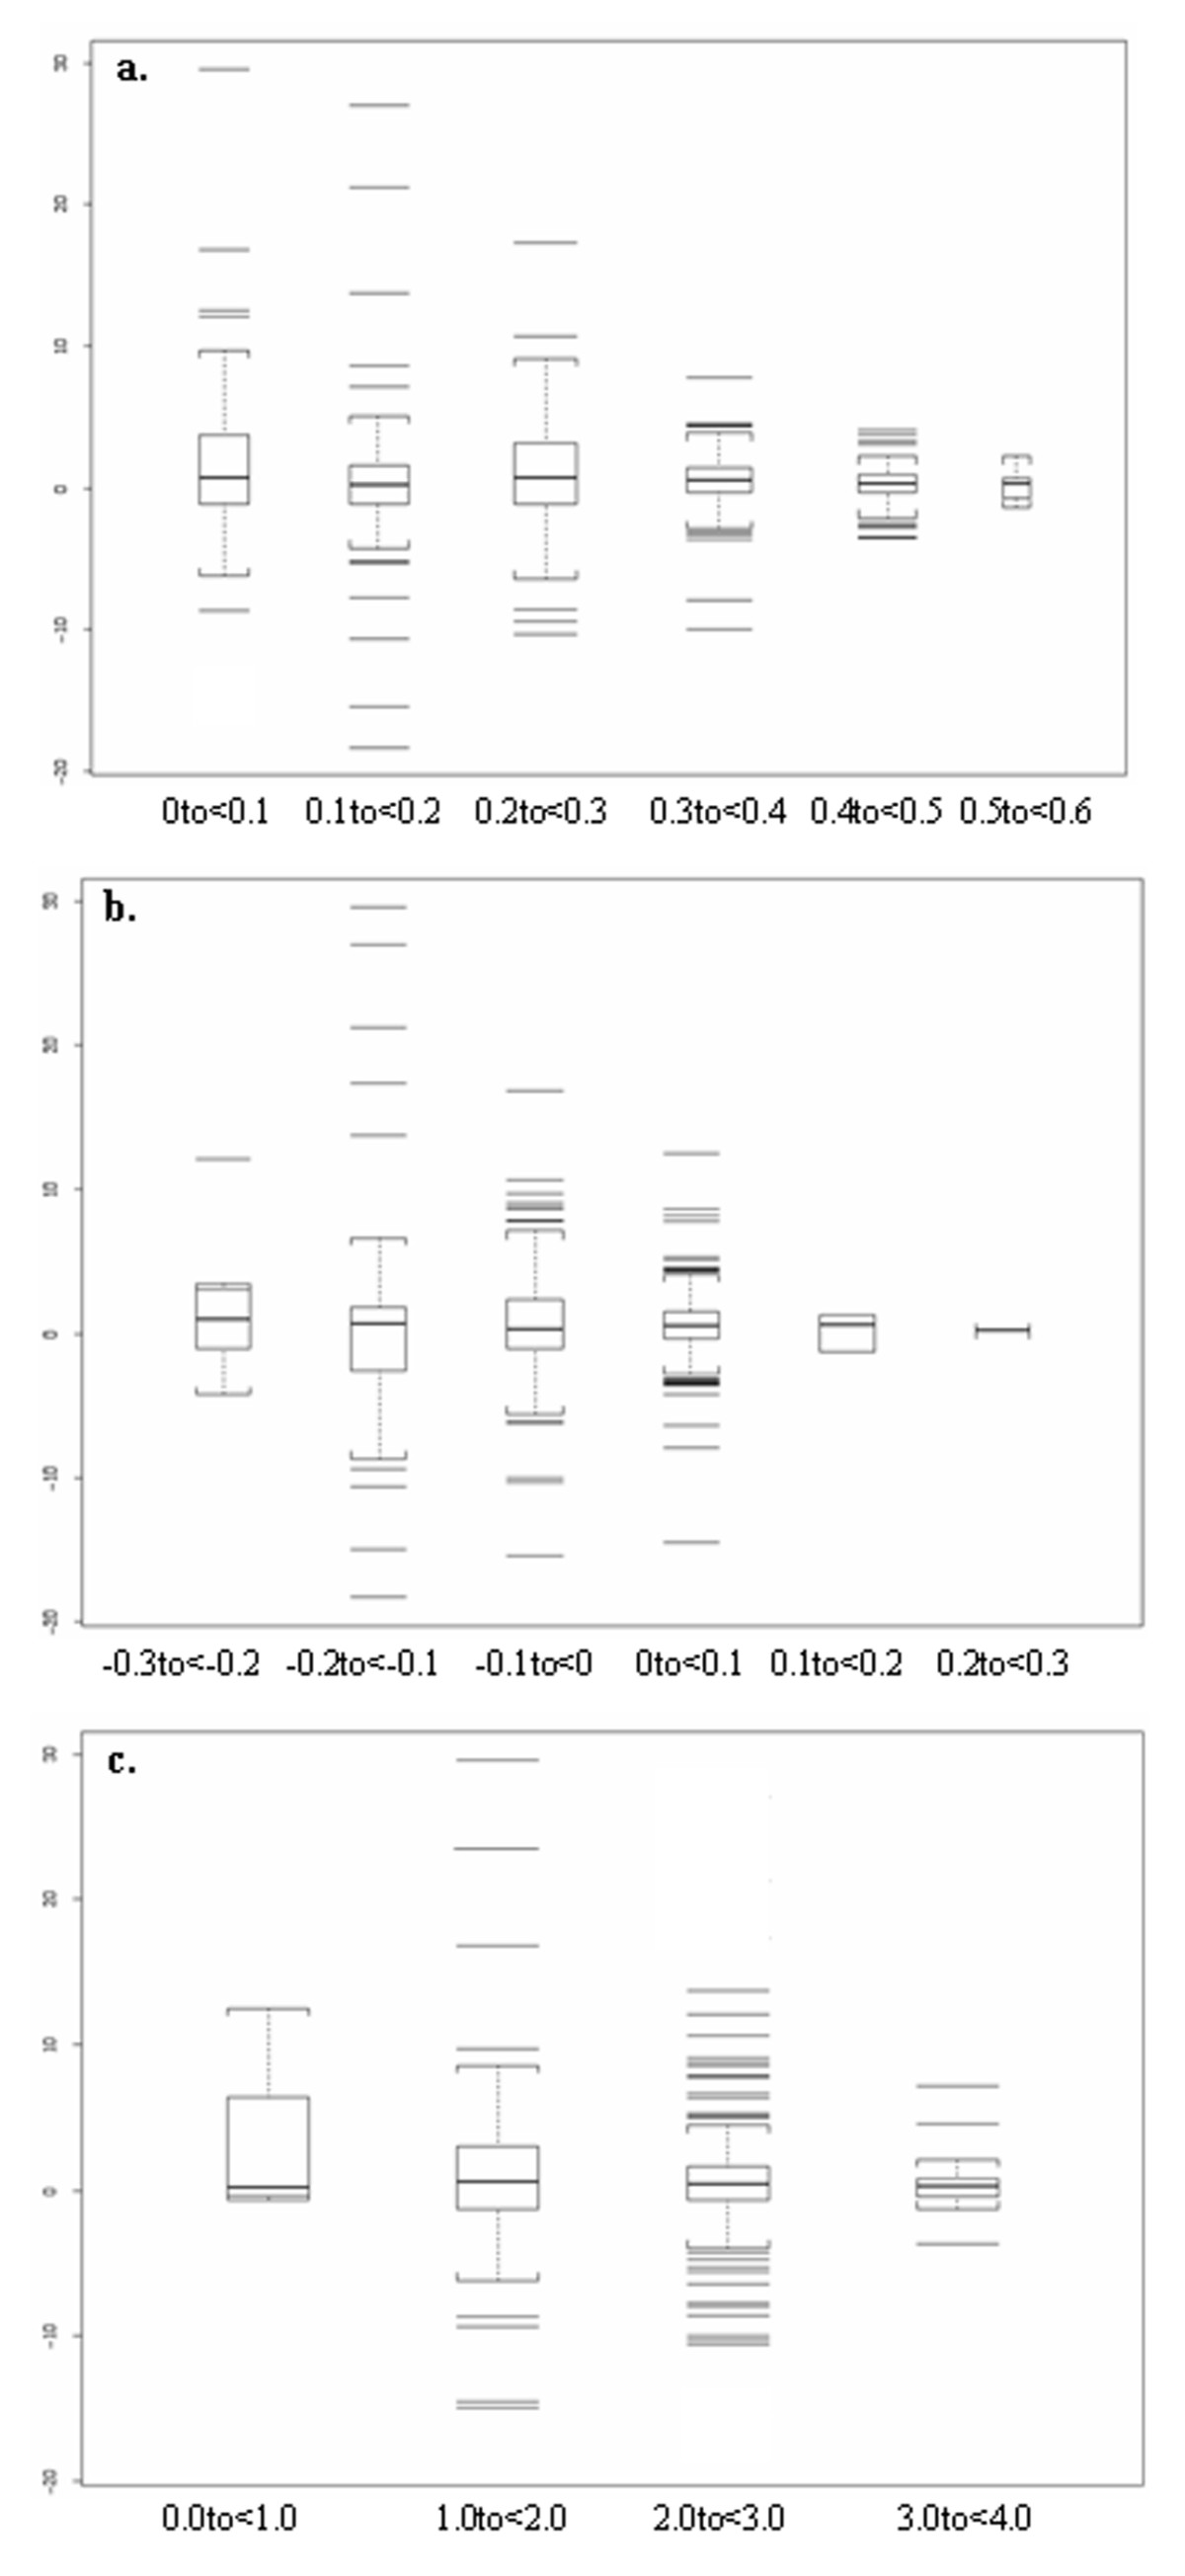 http://static-content.springer.com/image/art%3A10.1186%2F1471-2105-7-499/MediaObjects/12859_2006_Article_1238_Fig3_HTML.jpg